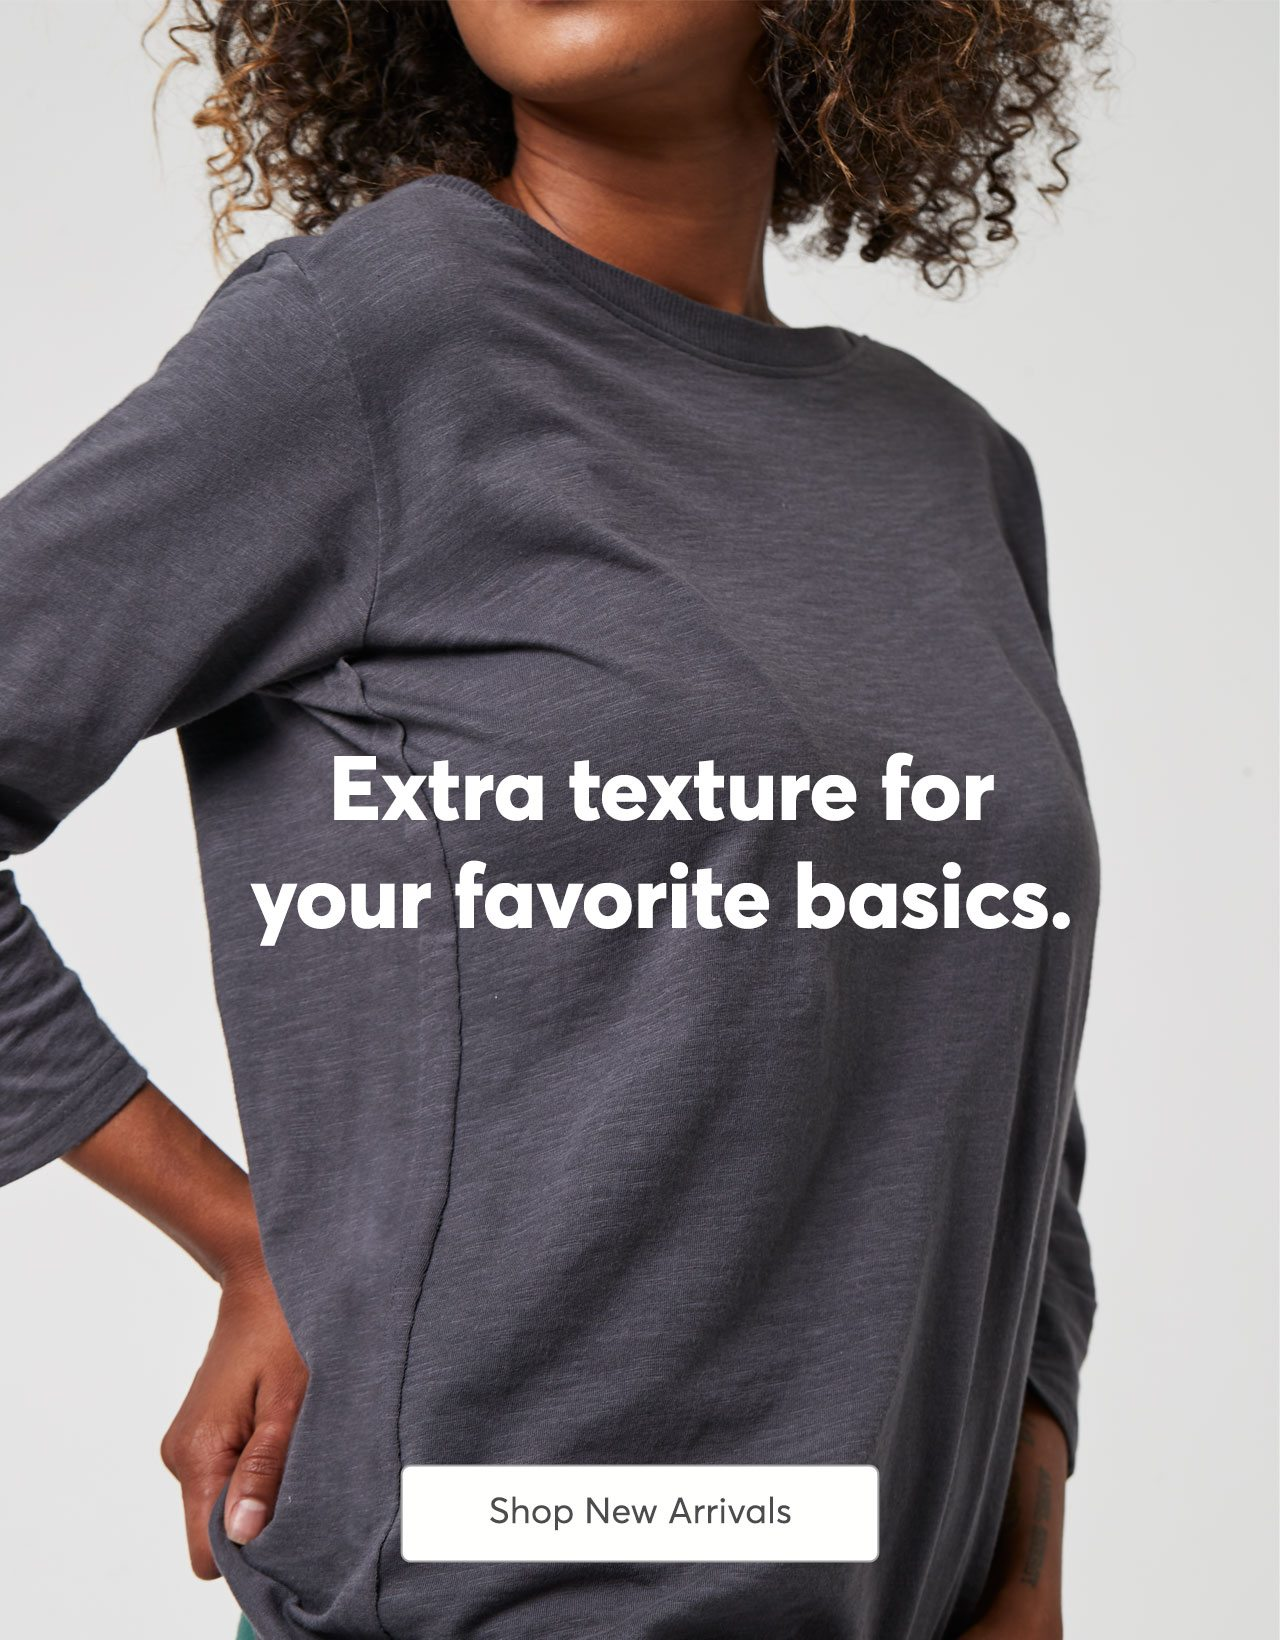 Extra texture for your favorite basics. Shop New Arrivals